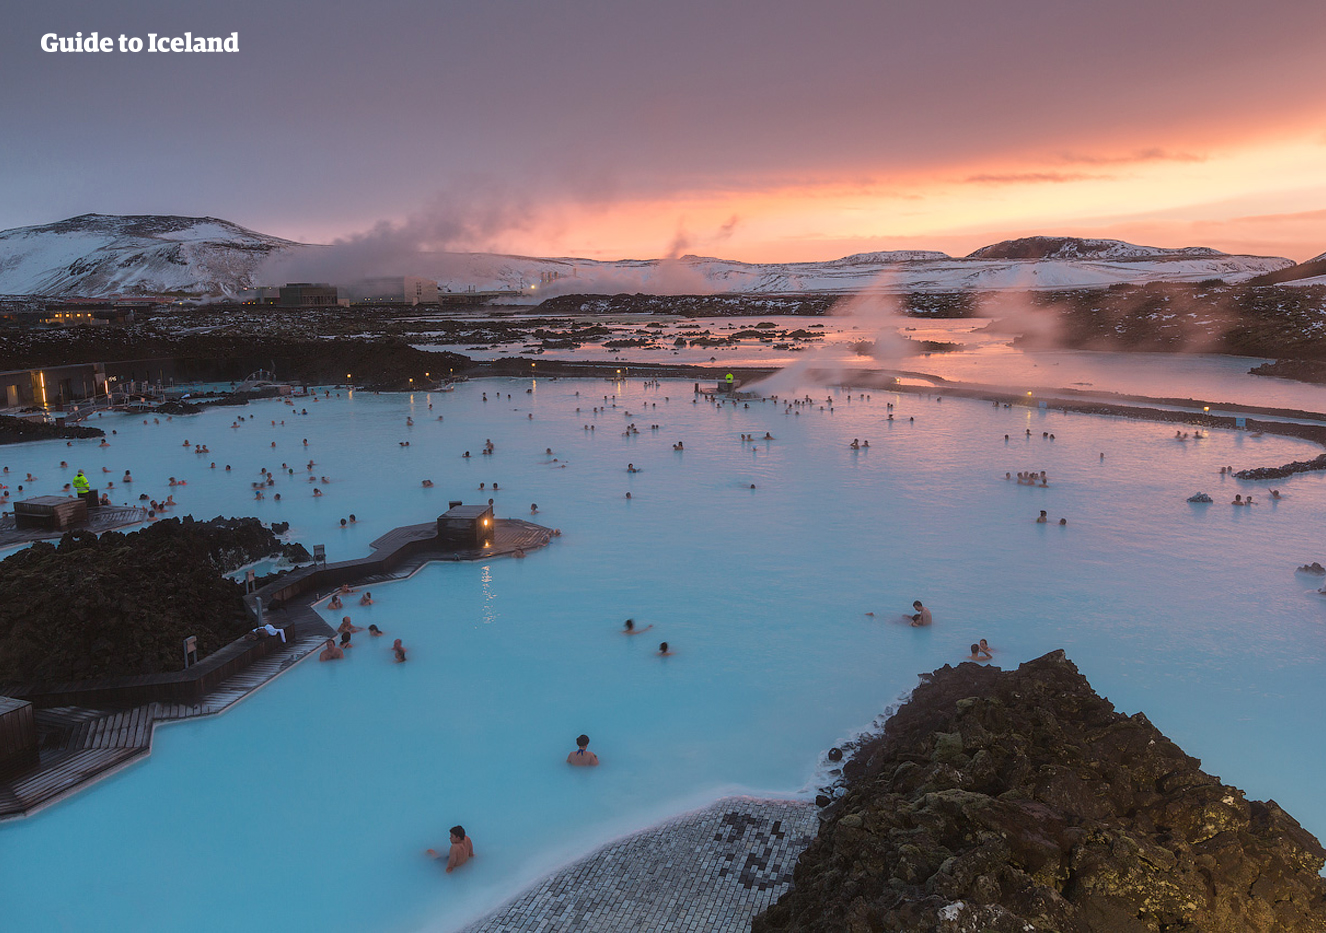 Enjoy the soothing warm water in Iceland's most famous attraction, the Blue Lagoon